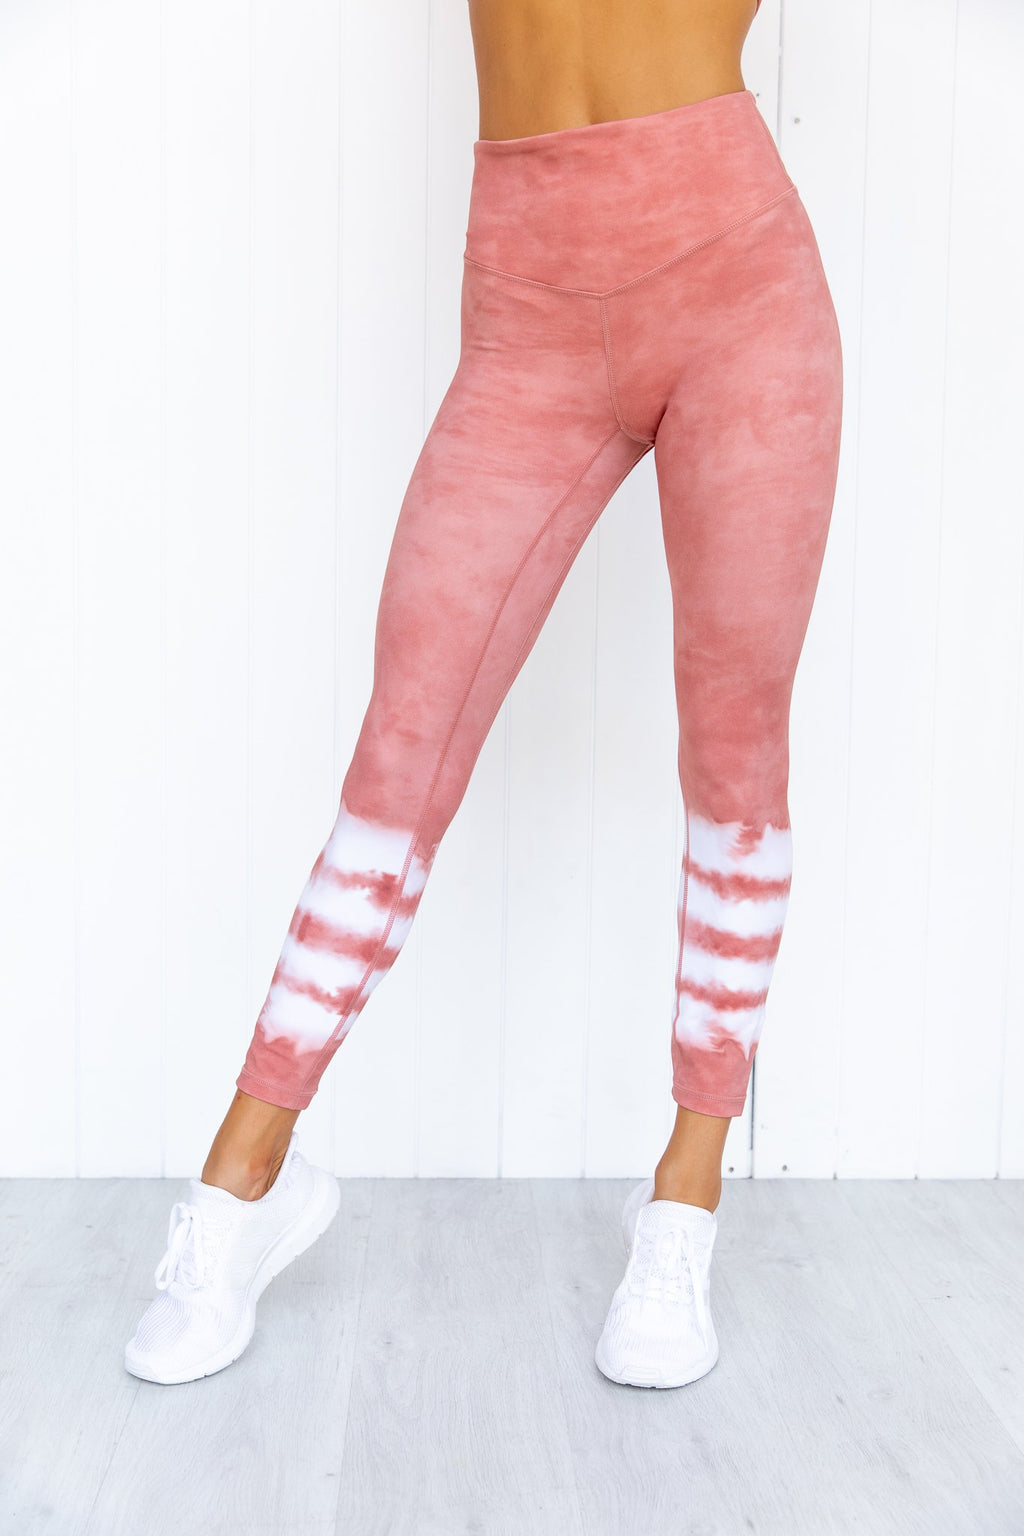 Drift Away 7/8 Legging - Rust - PURE DASH